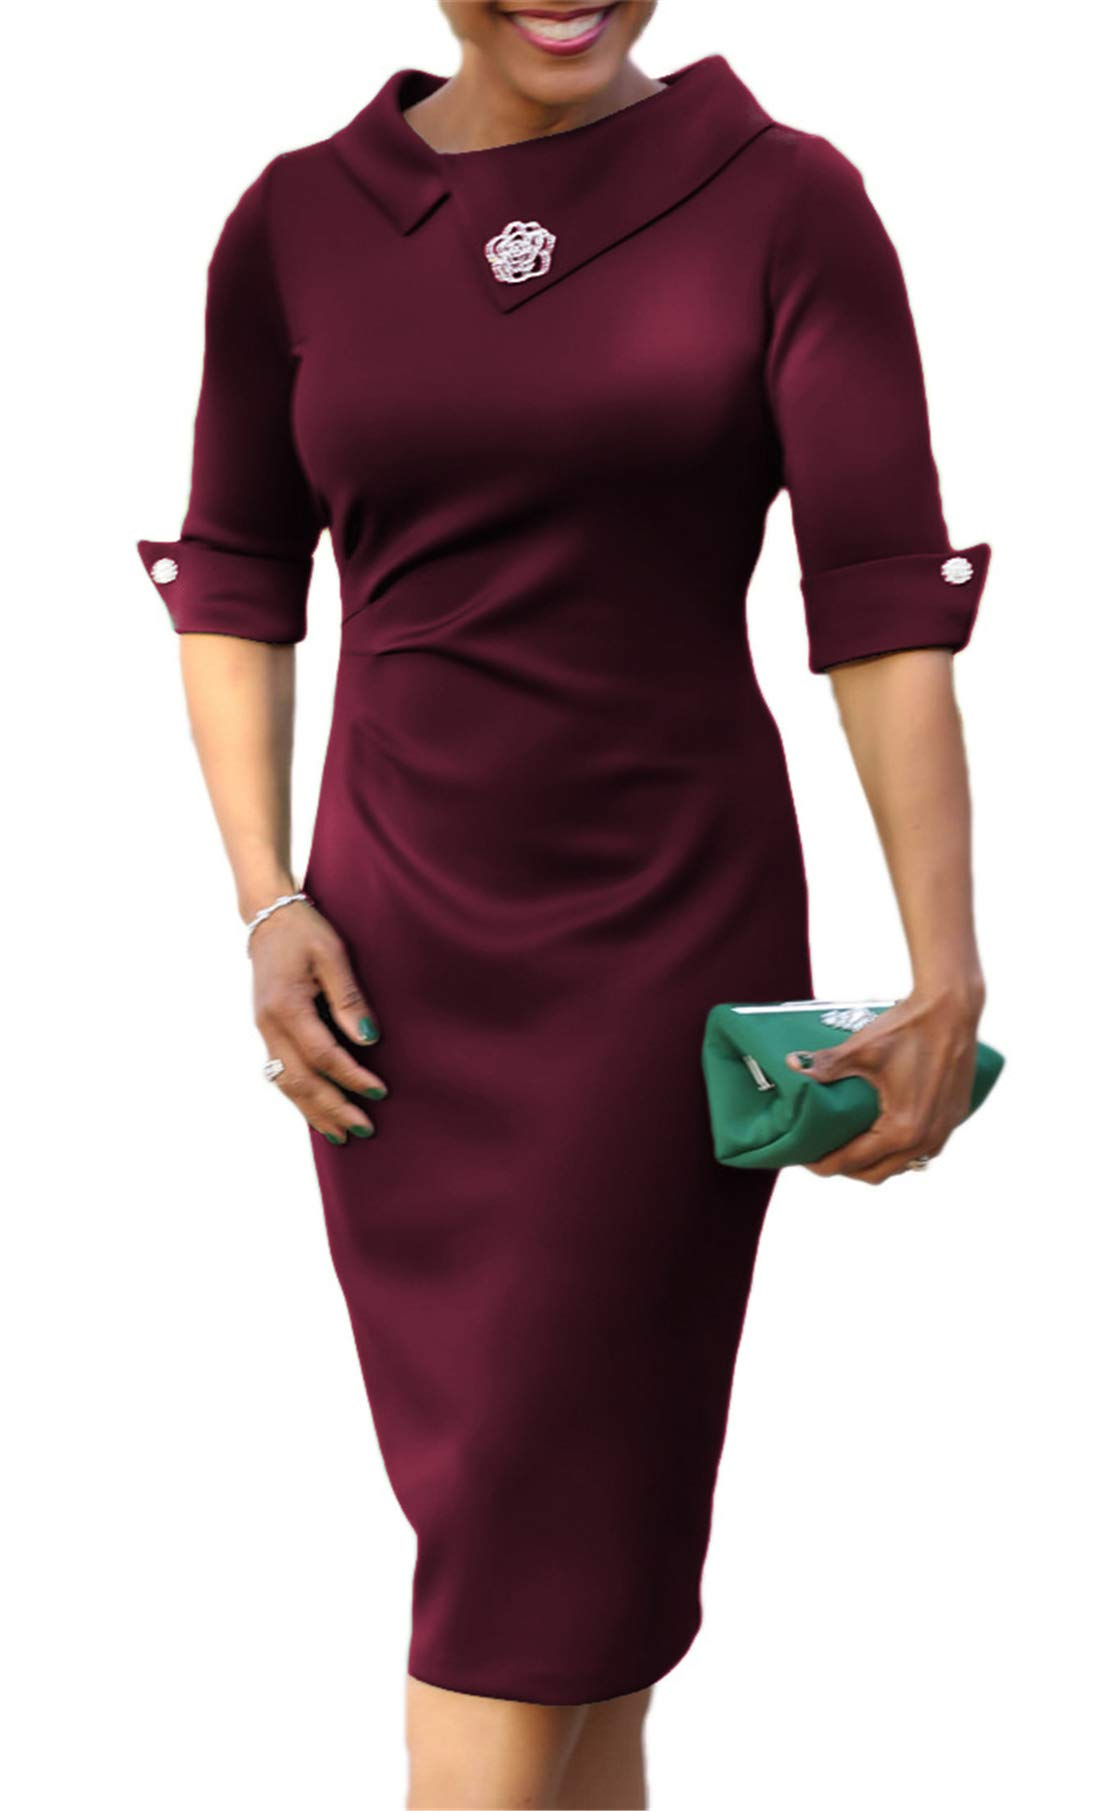 Women's Lapel Solid Color Elegant Sheath High Waist Formal Dress Wine Red Large